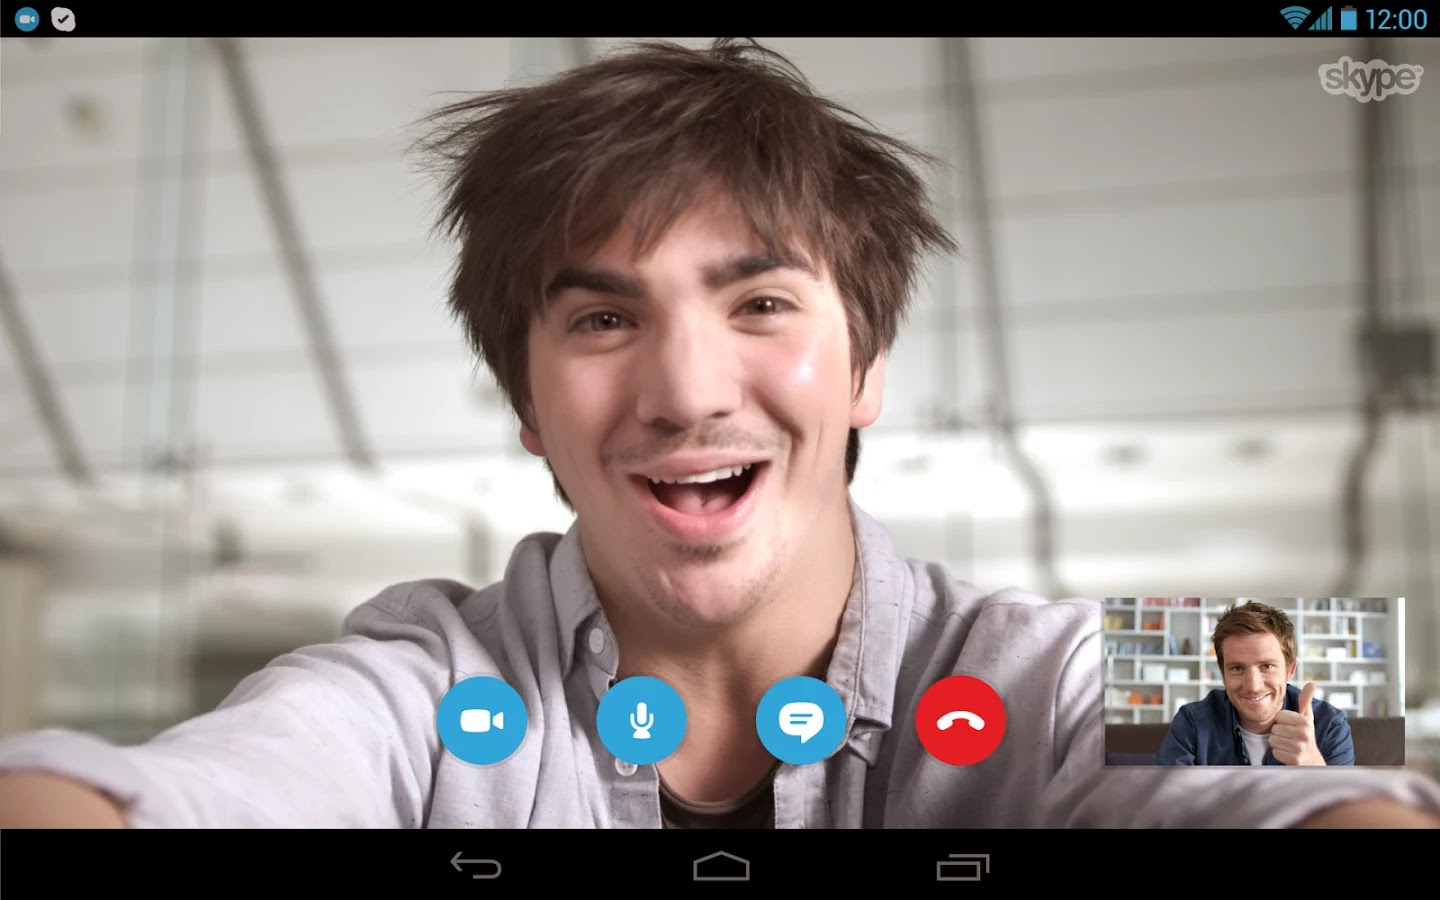 Skype - free IM & video calls v6.1.0.16416